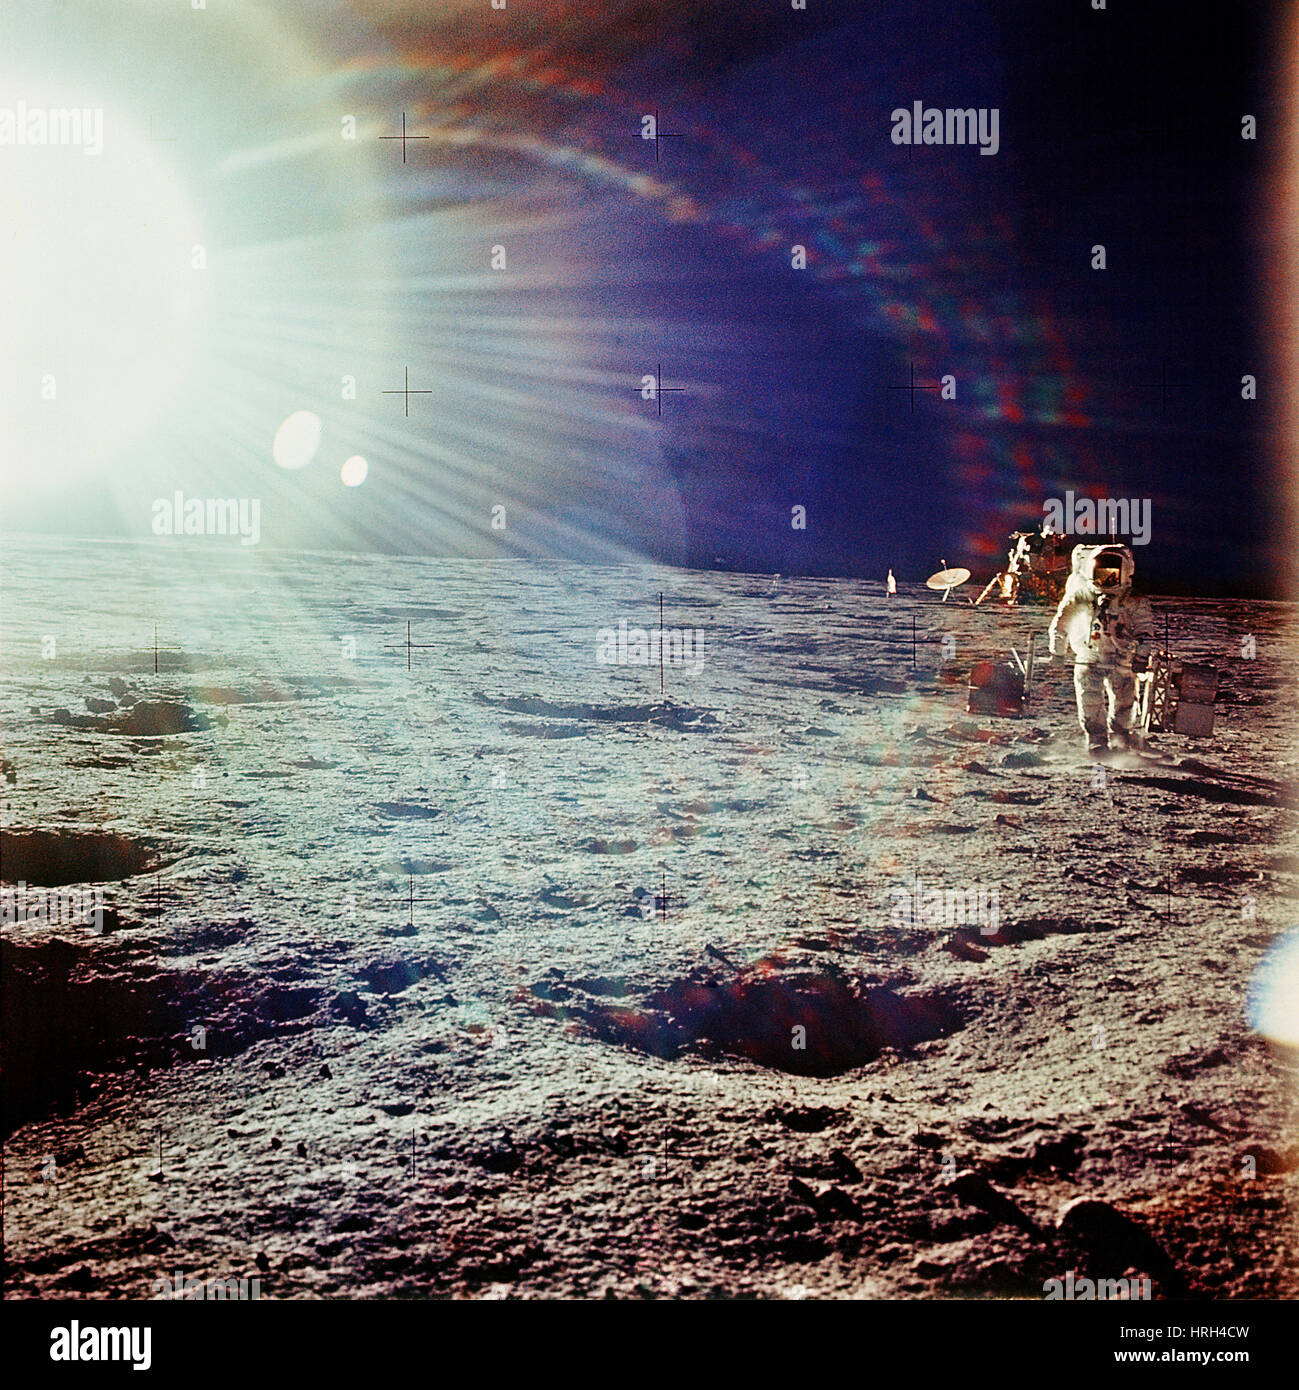 Apollo 12 astronaut - Stock Image